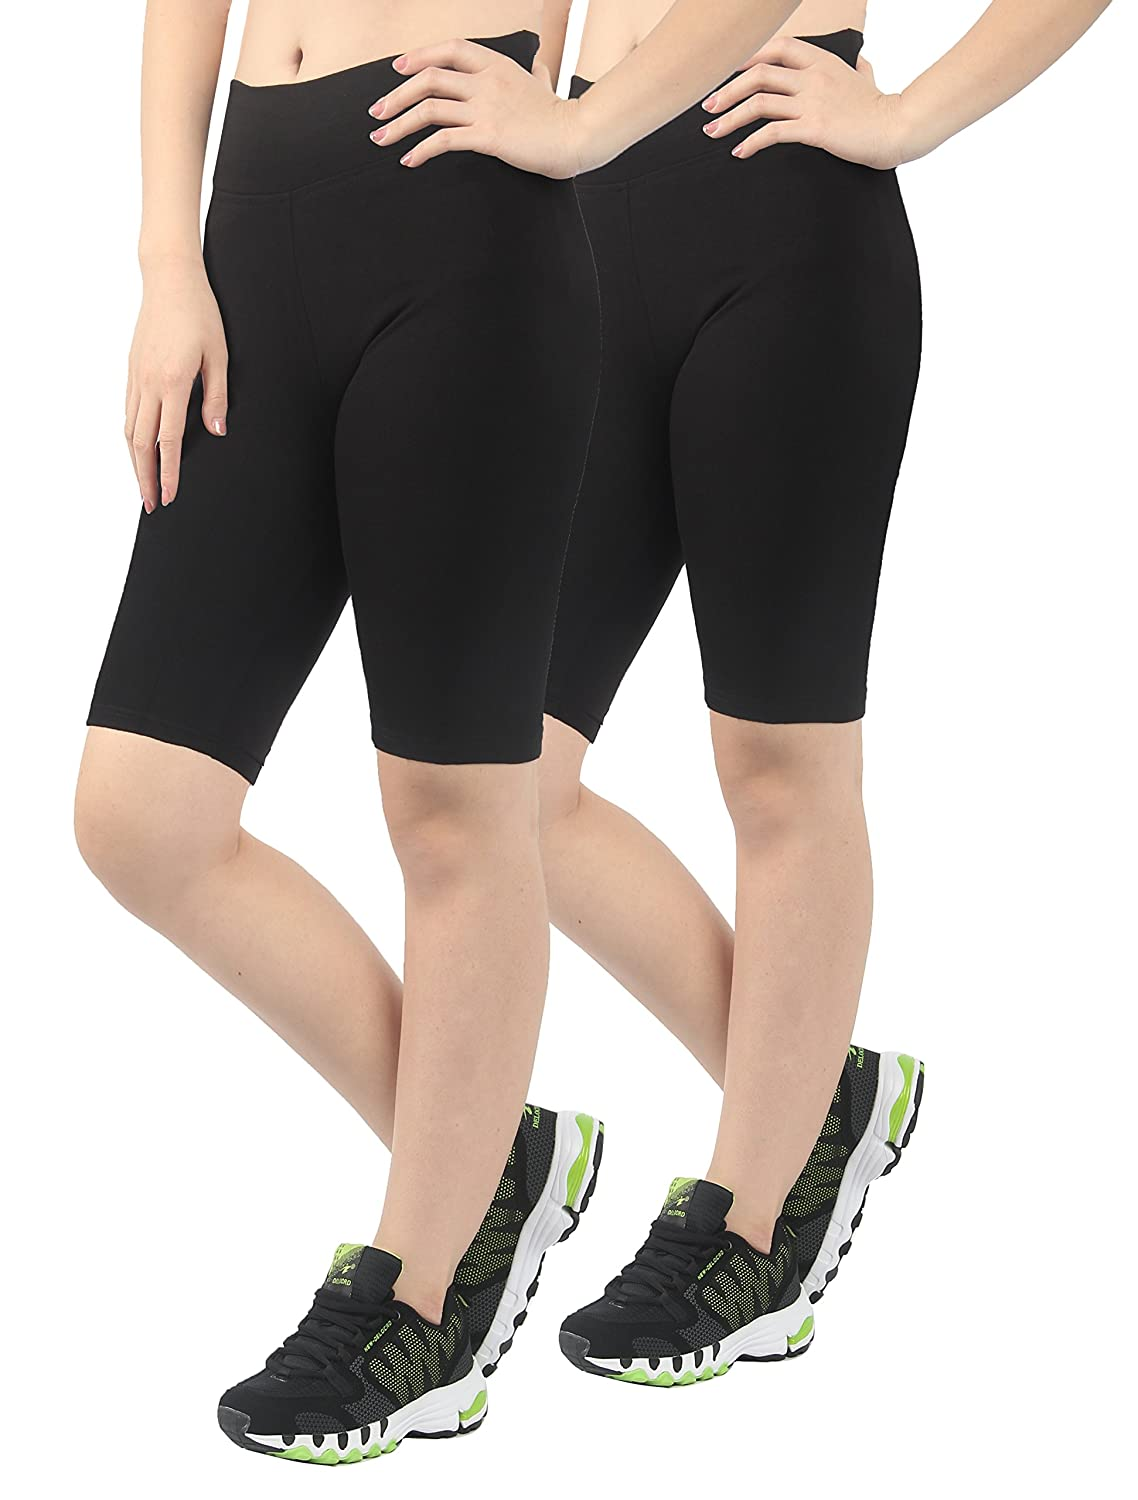 4HOW 2Pack Women's Tight Active Shorts S22651120